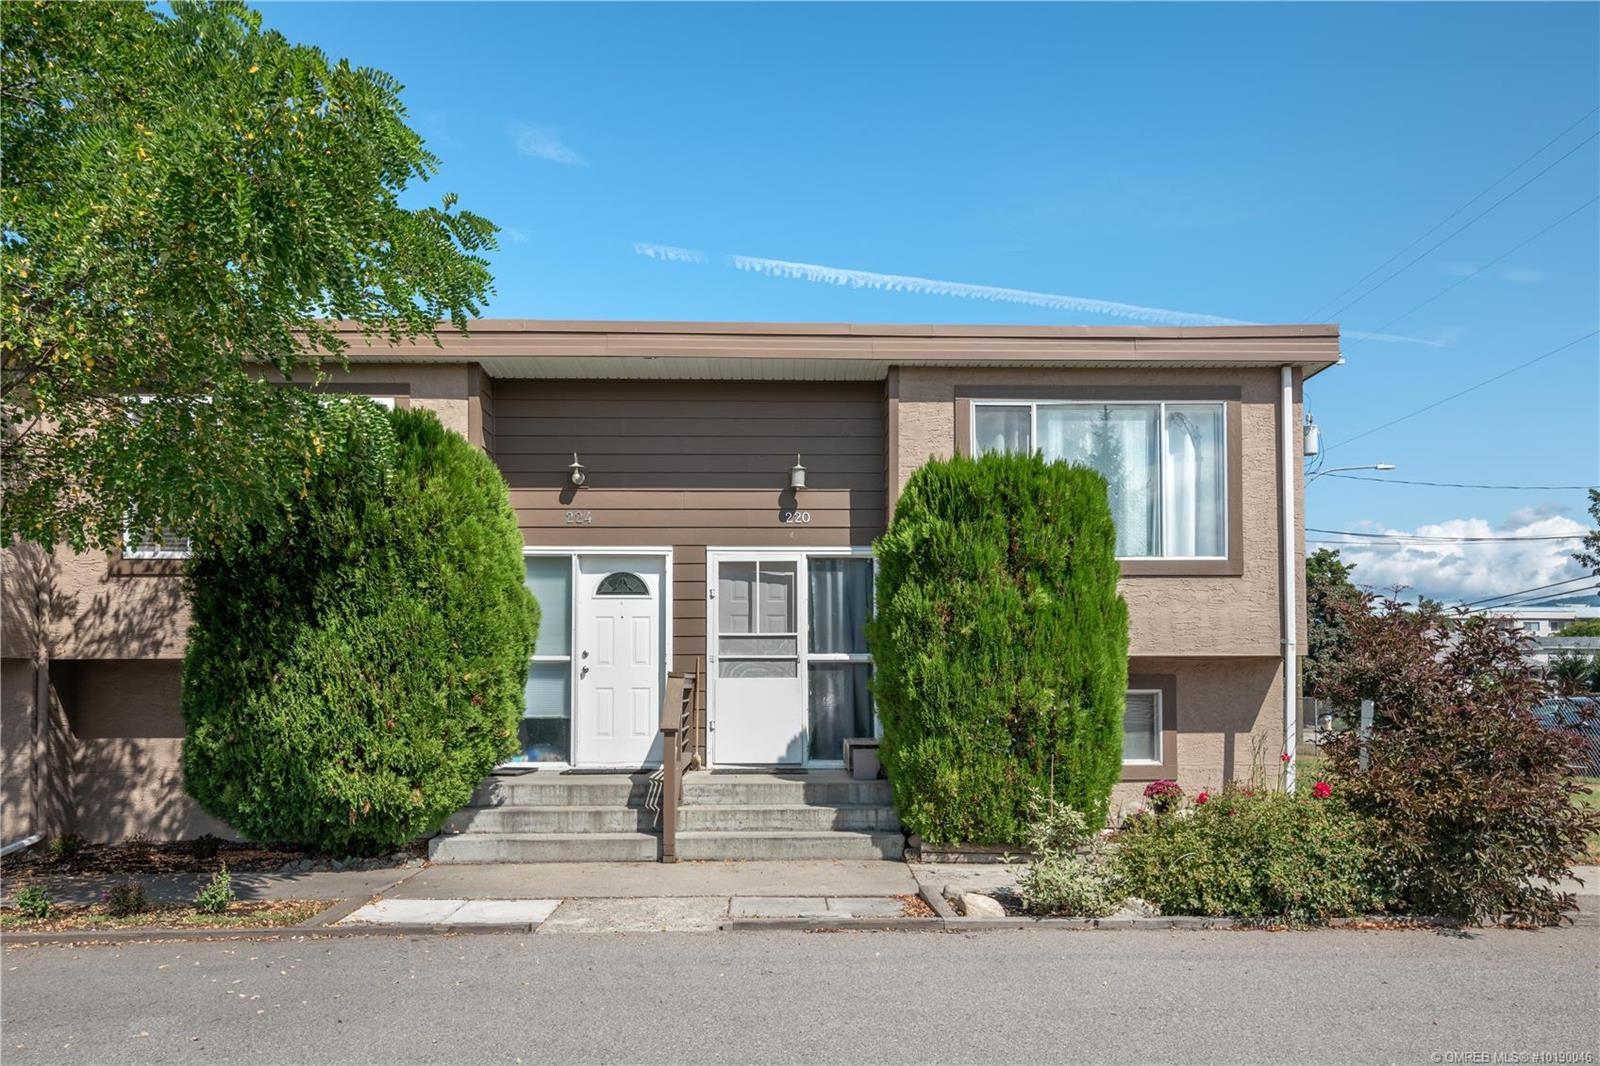 Removed: 6 - 220 Asher Road, Kelowna, BC - Removed on 2019-09-27 05:39:08